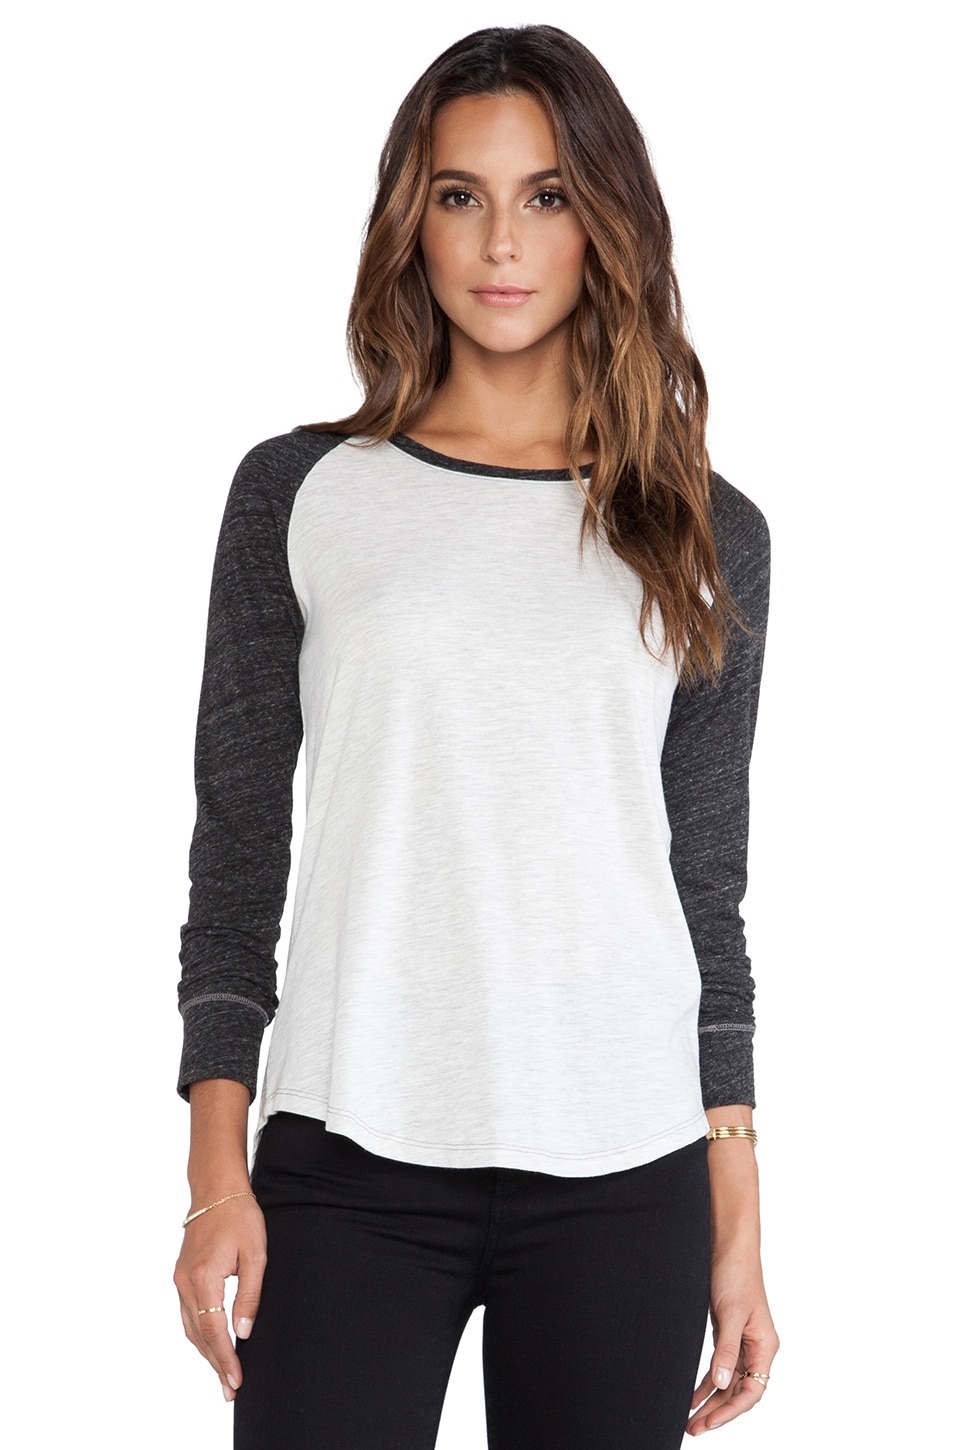 EVER Bi-Color Raglan Tee in Light Grey & Charcoal